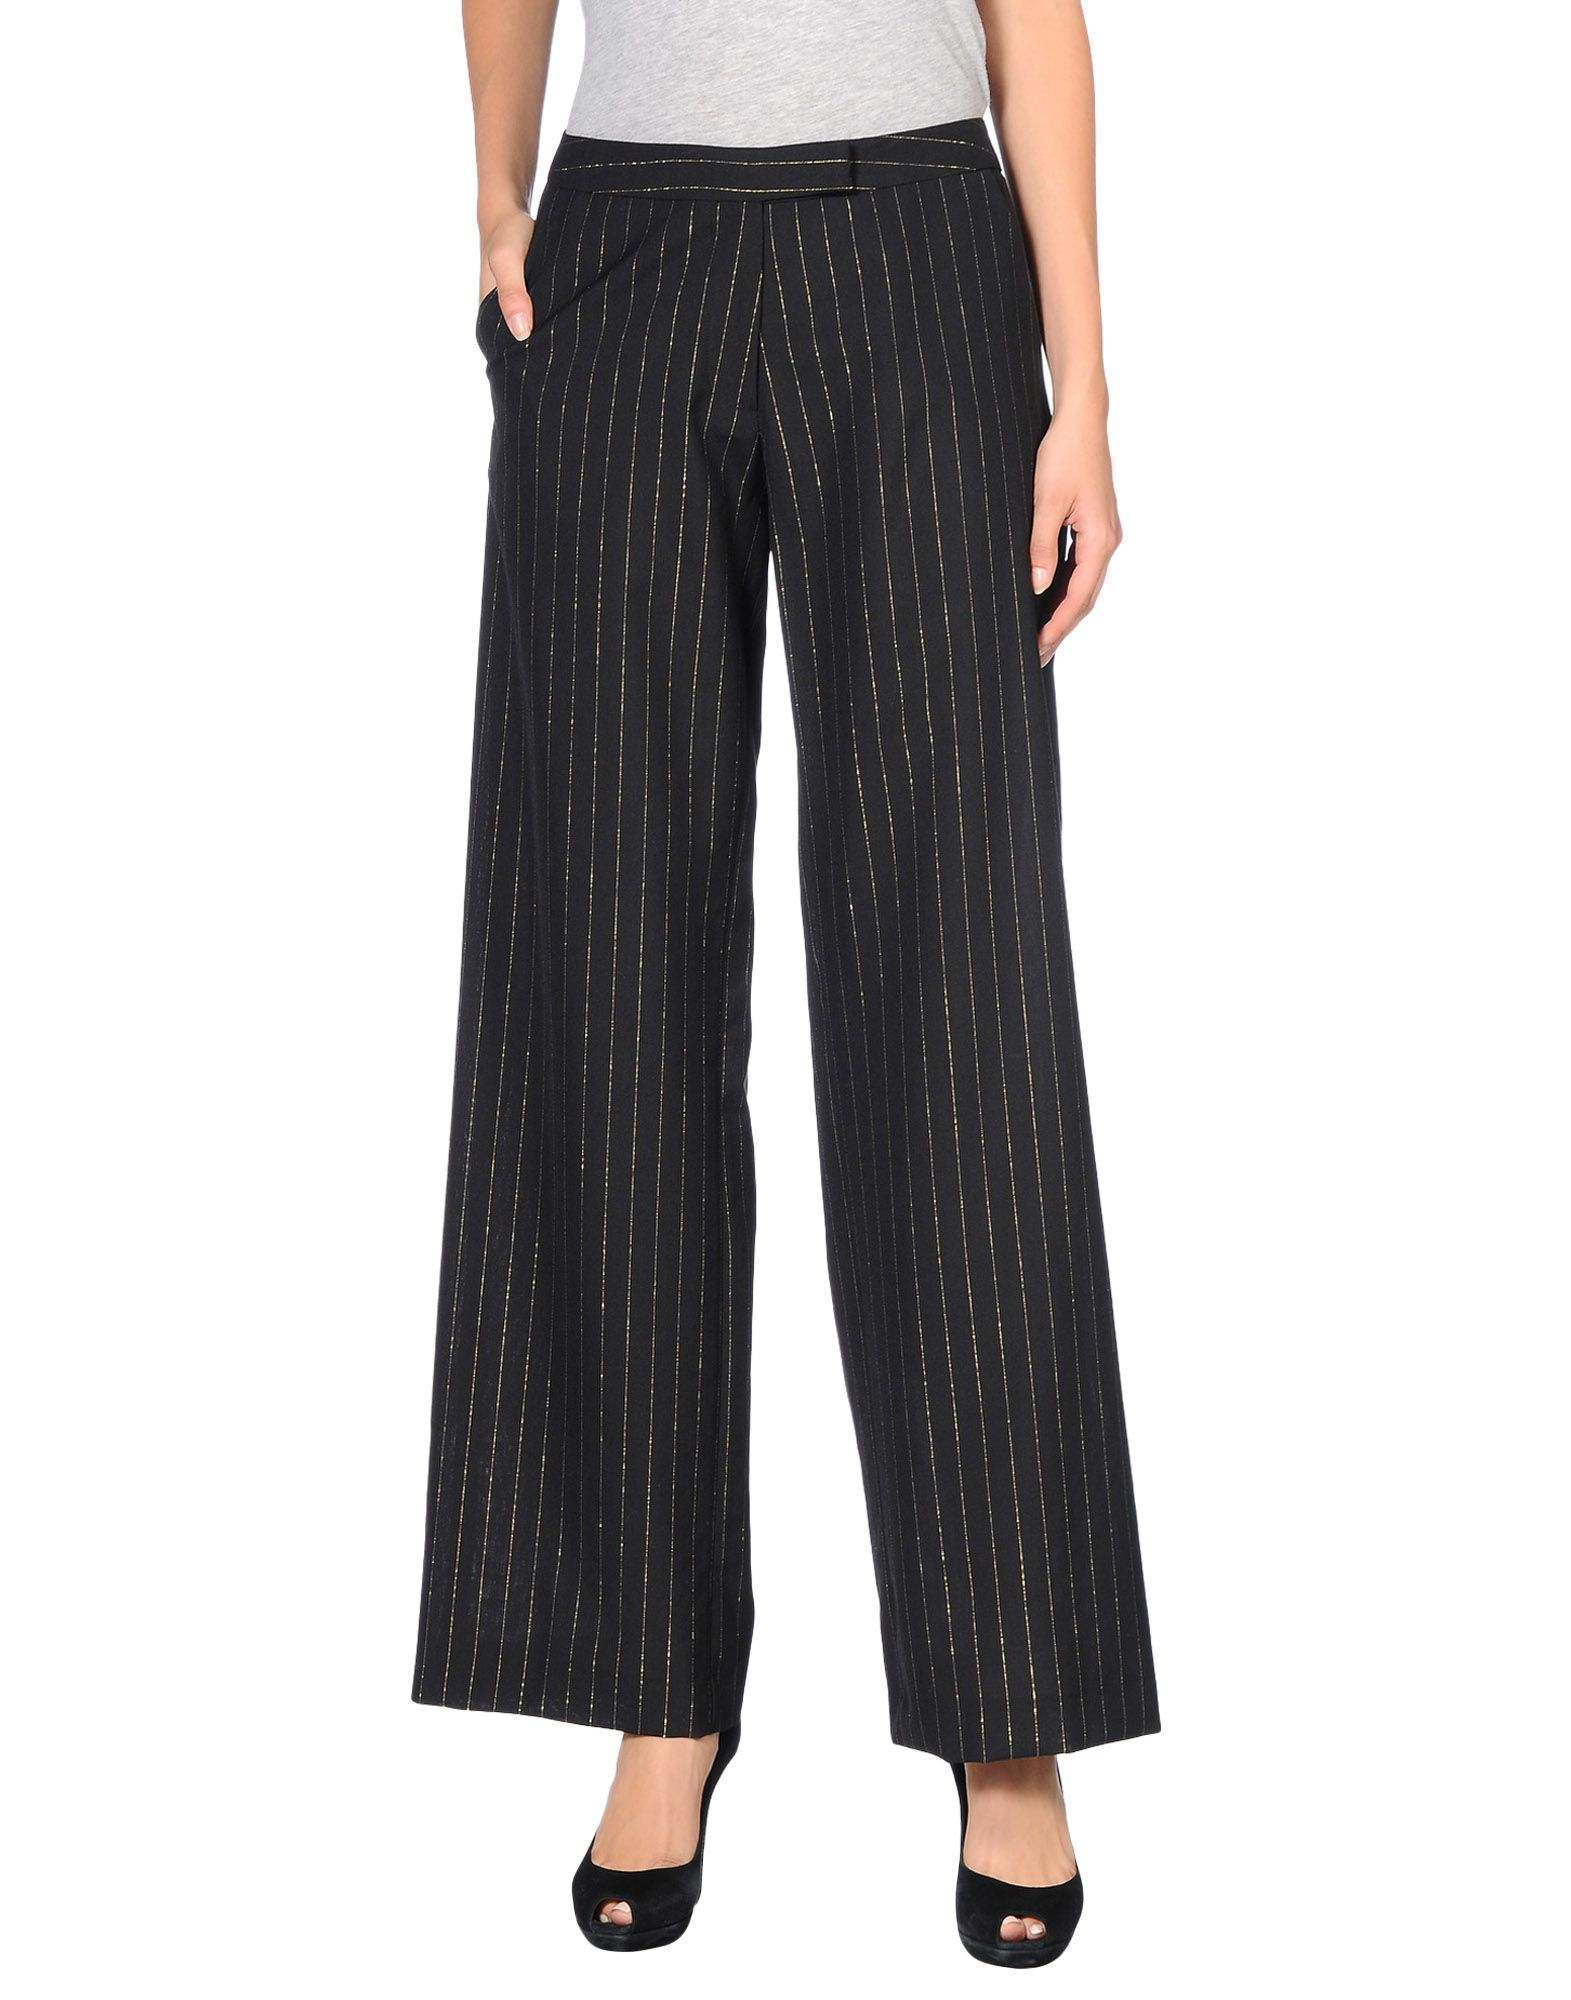 ARTHUR ARBESSER Casual Pants in Black